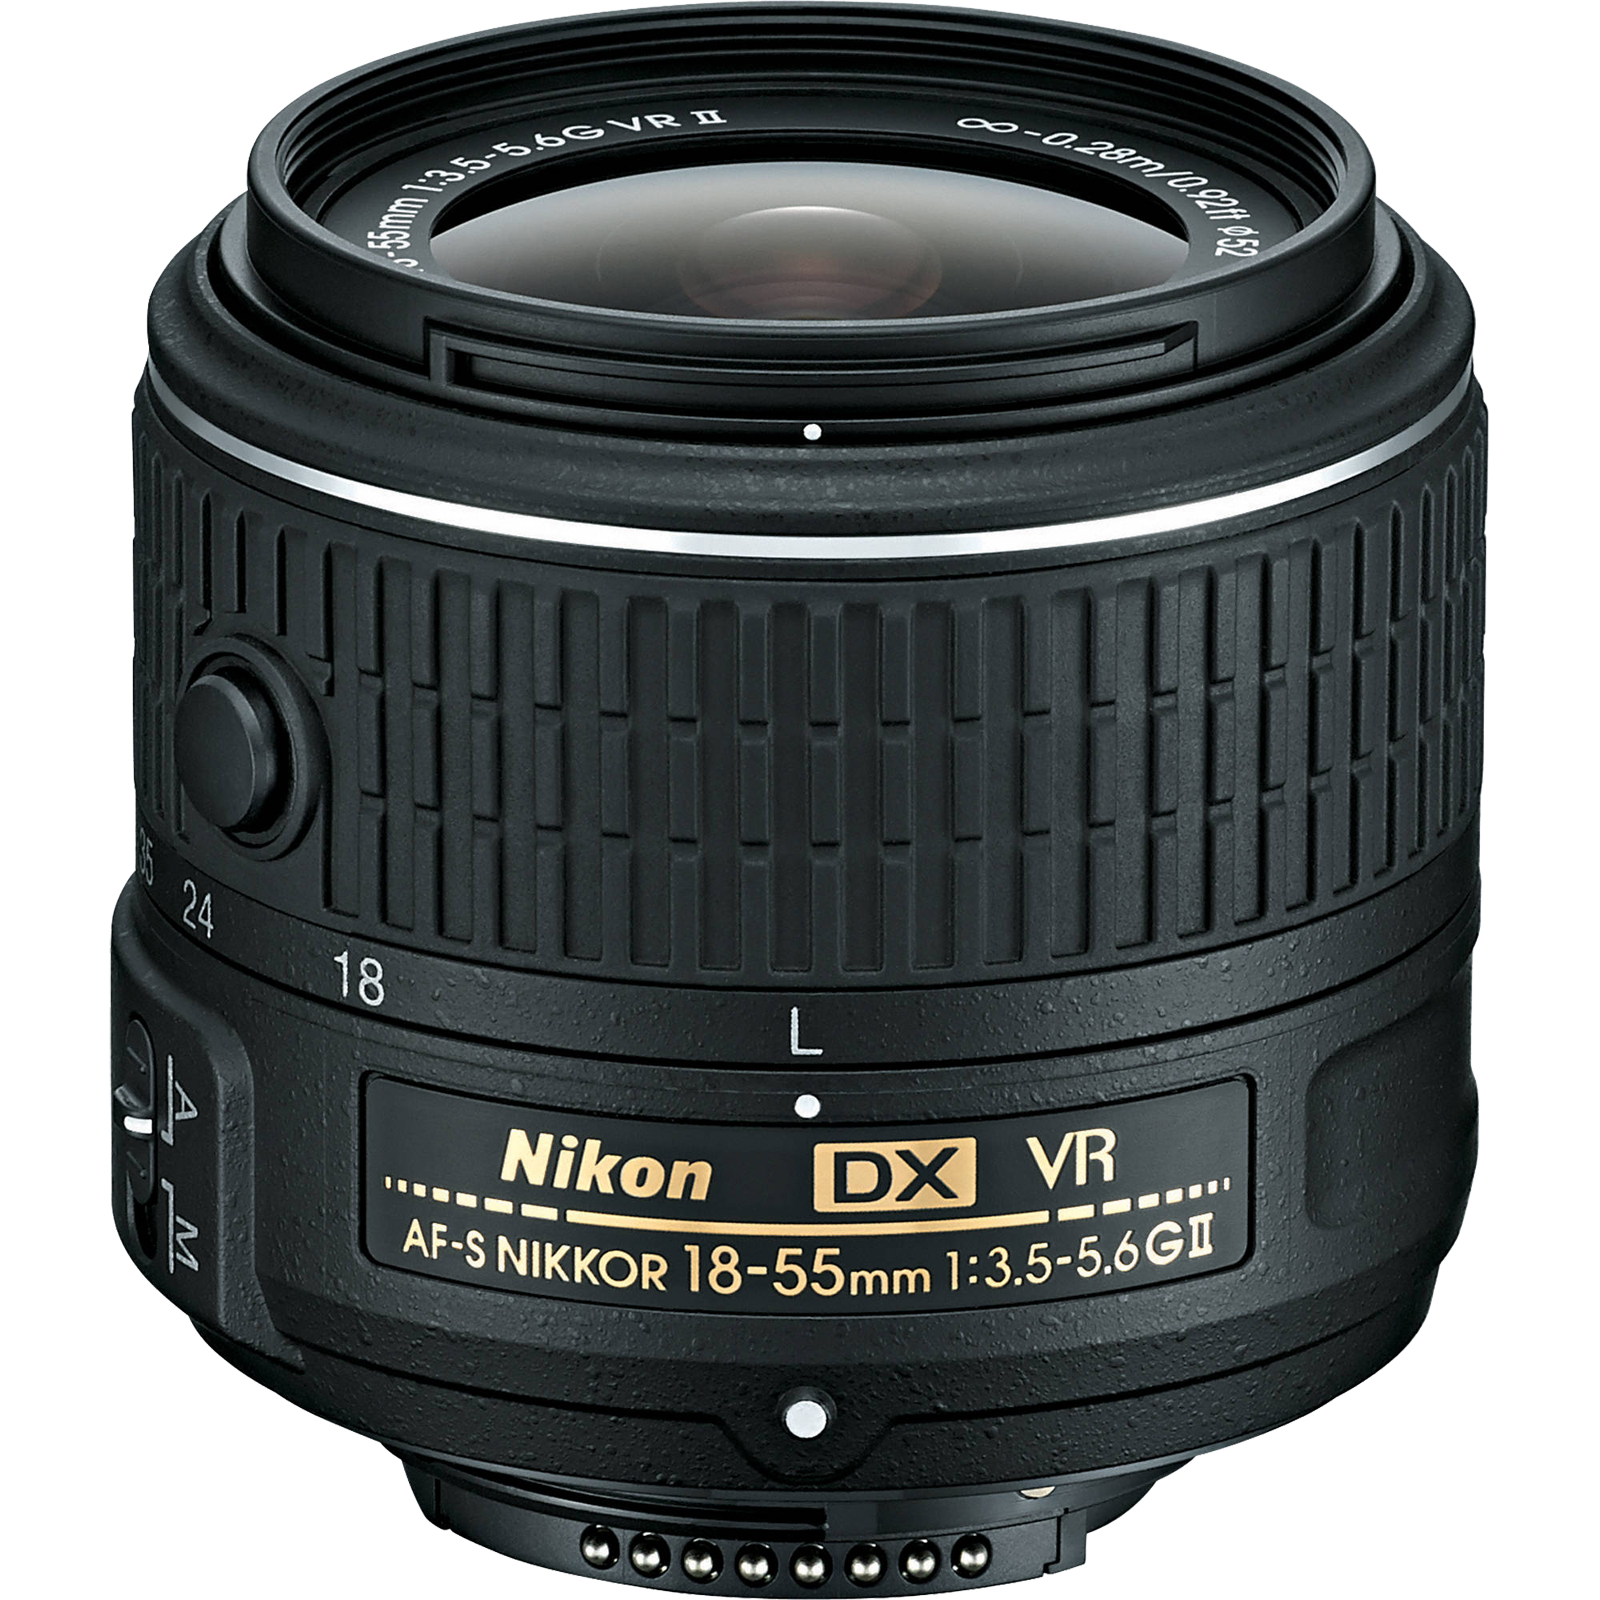 Nikon 18-55mm f/3.5-5.6G VR II DX AF-S Zoom-Nikkor Lens - Factory Refurbished includes Full 1 Year Warranty